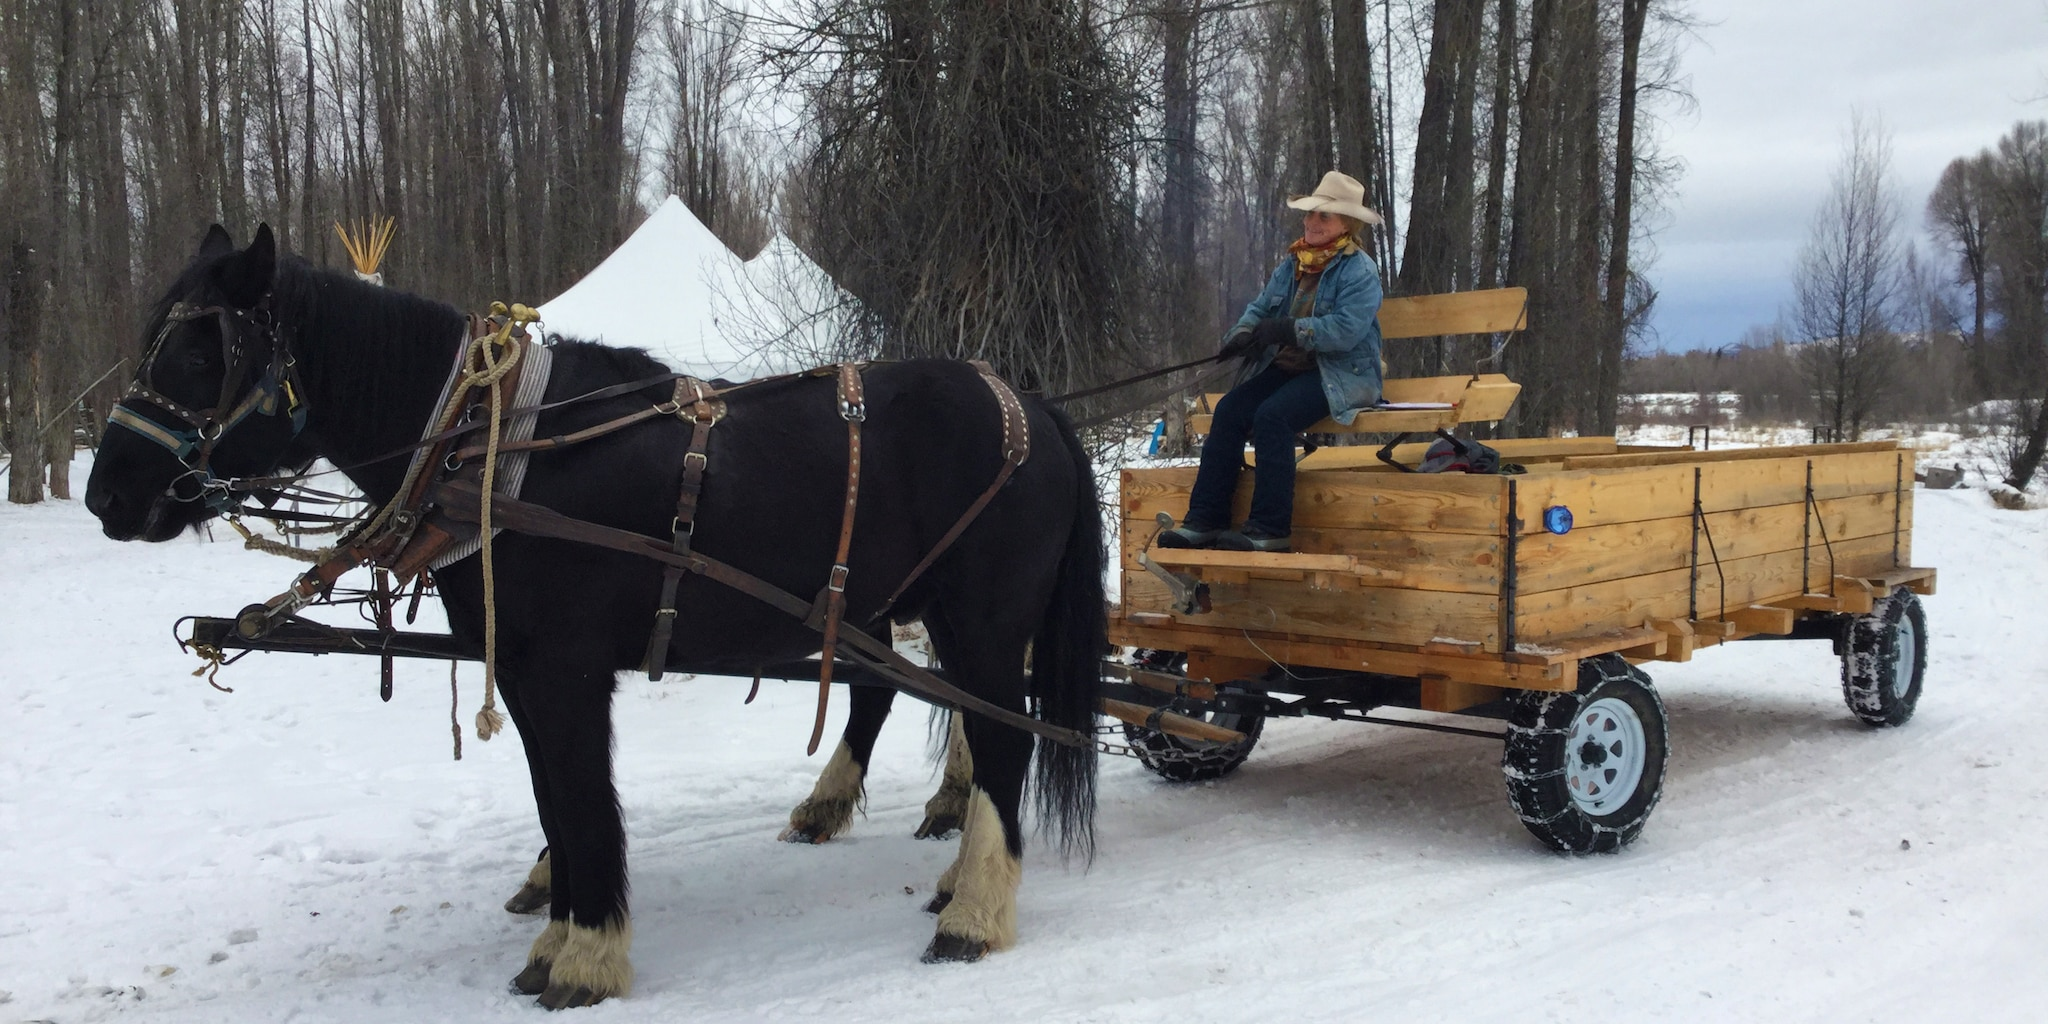 Take your family on an old-fashioned sleigh ride!